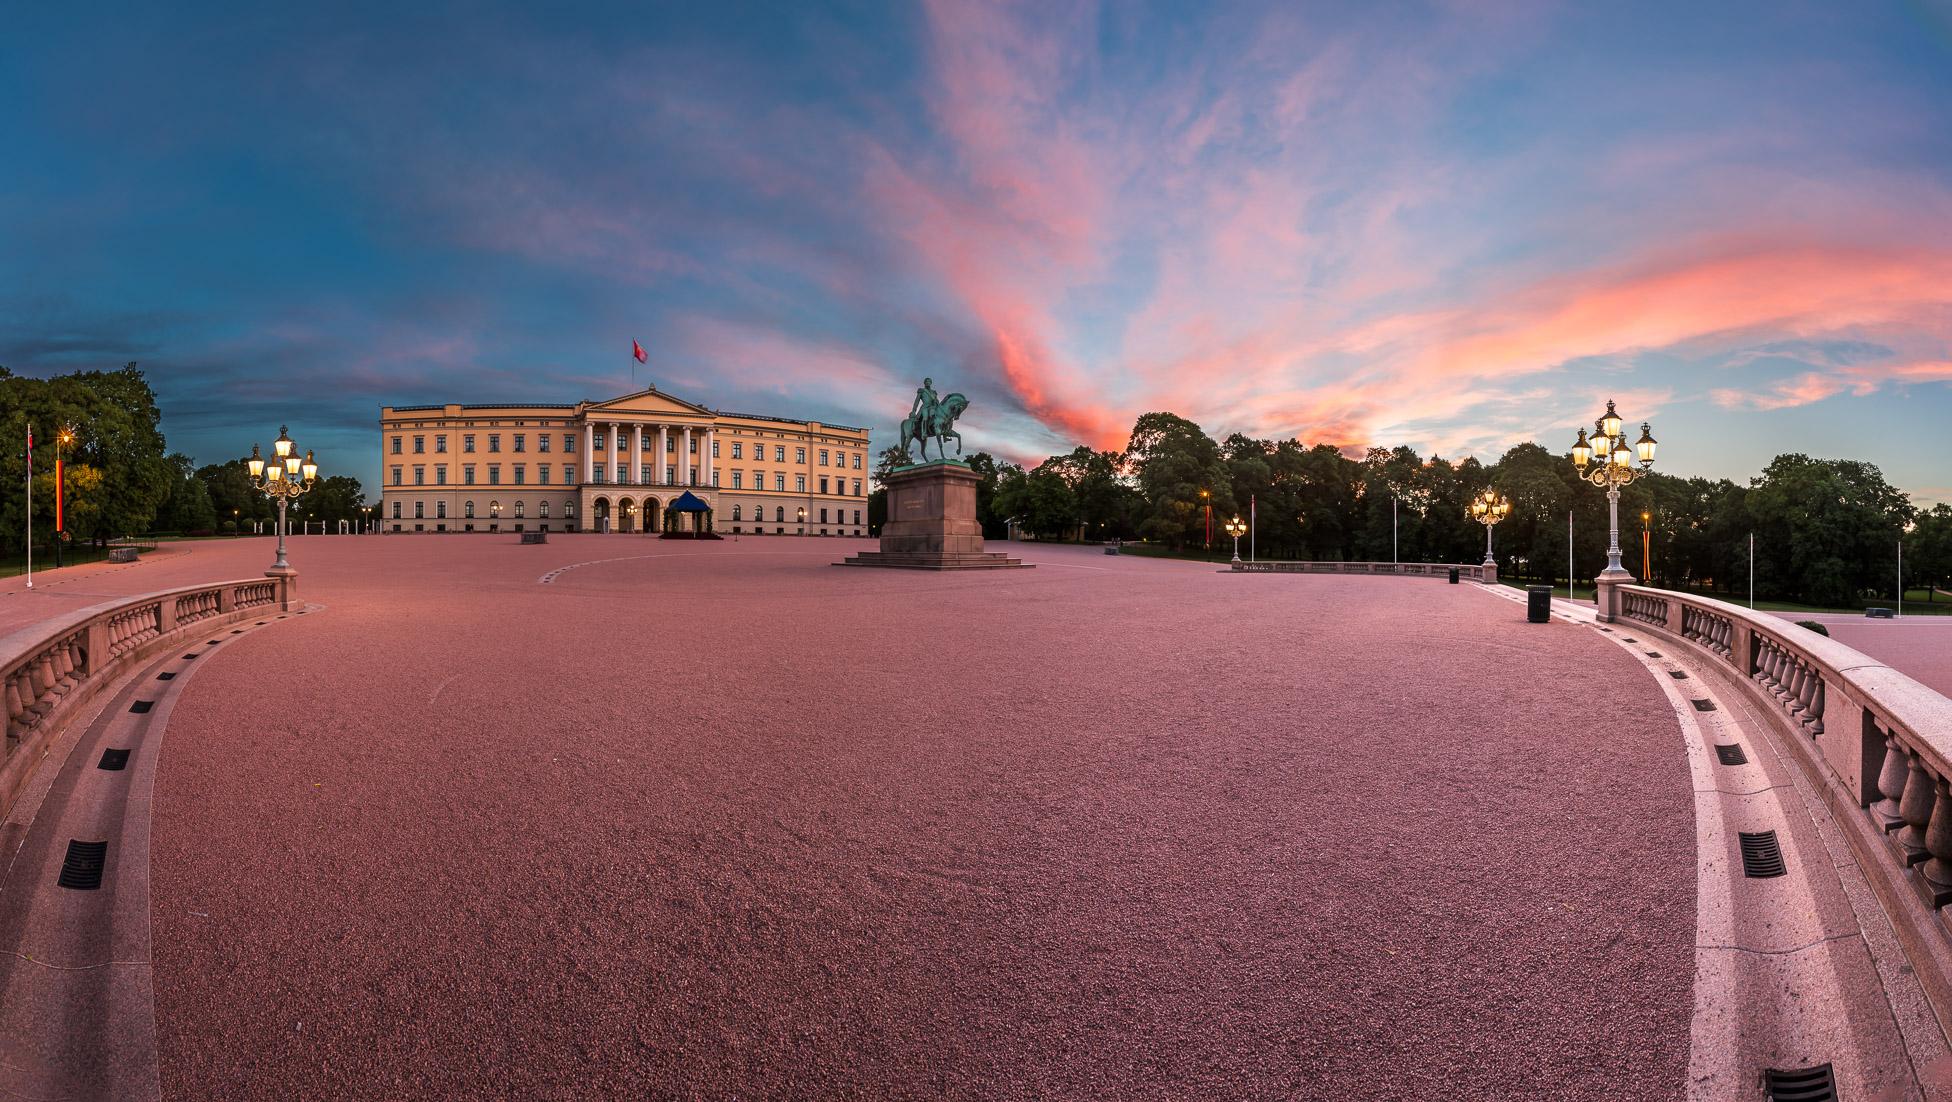 The Royal Palace and Statue of King Karl Johan at Sunrise, Oslo, Norway